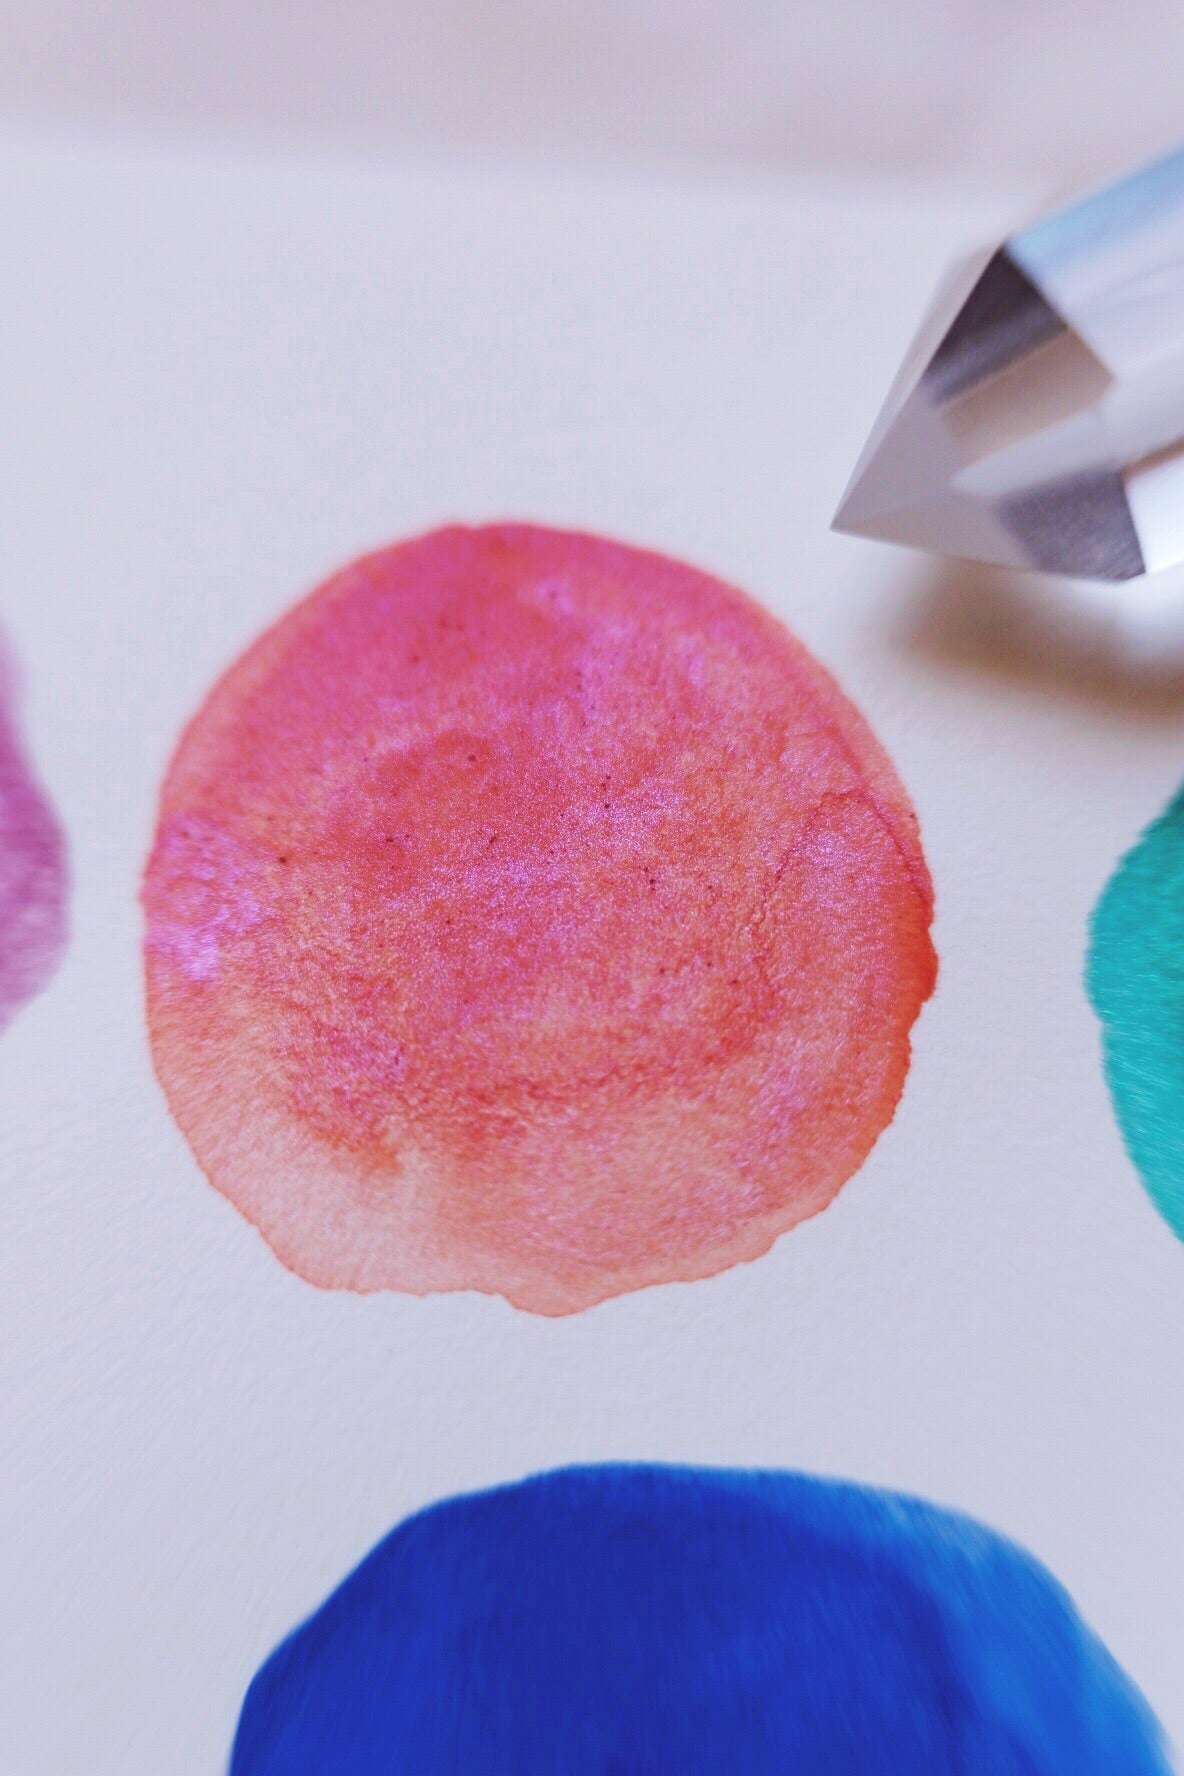 Moons of Saturn + Limited Edition Mineral shimmer watercolor palette